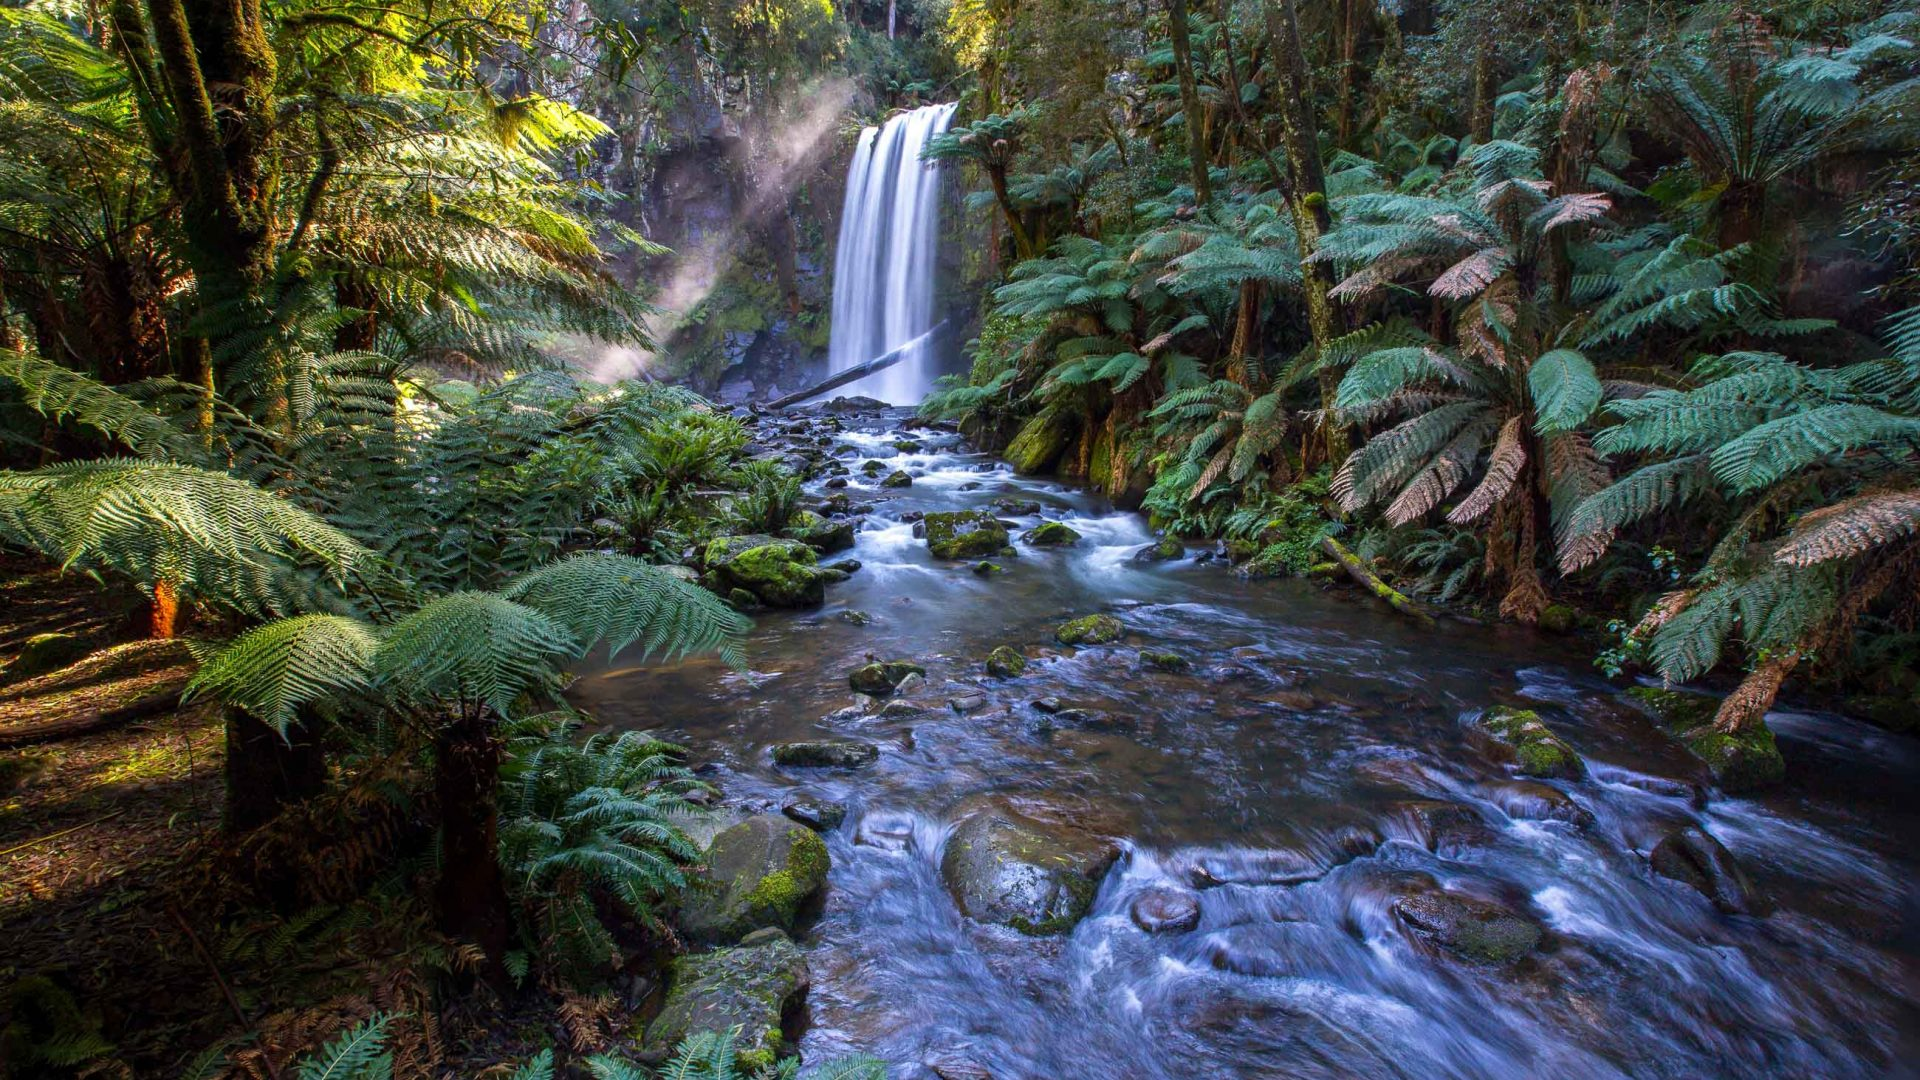 A waterfall surrounded by green ferns.